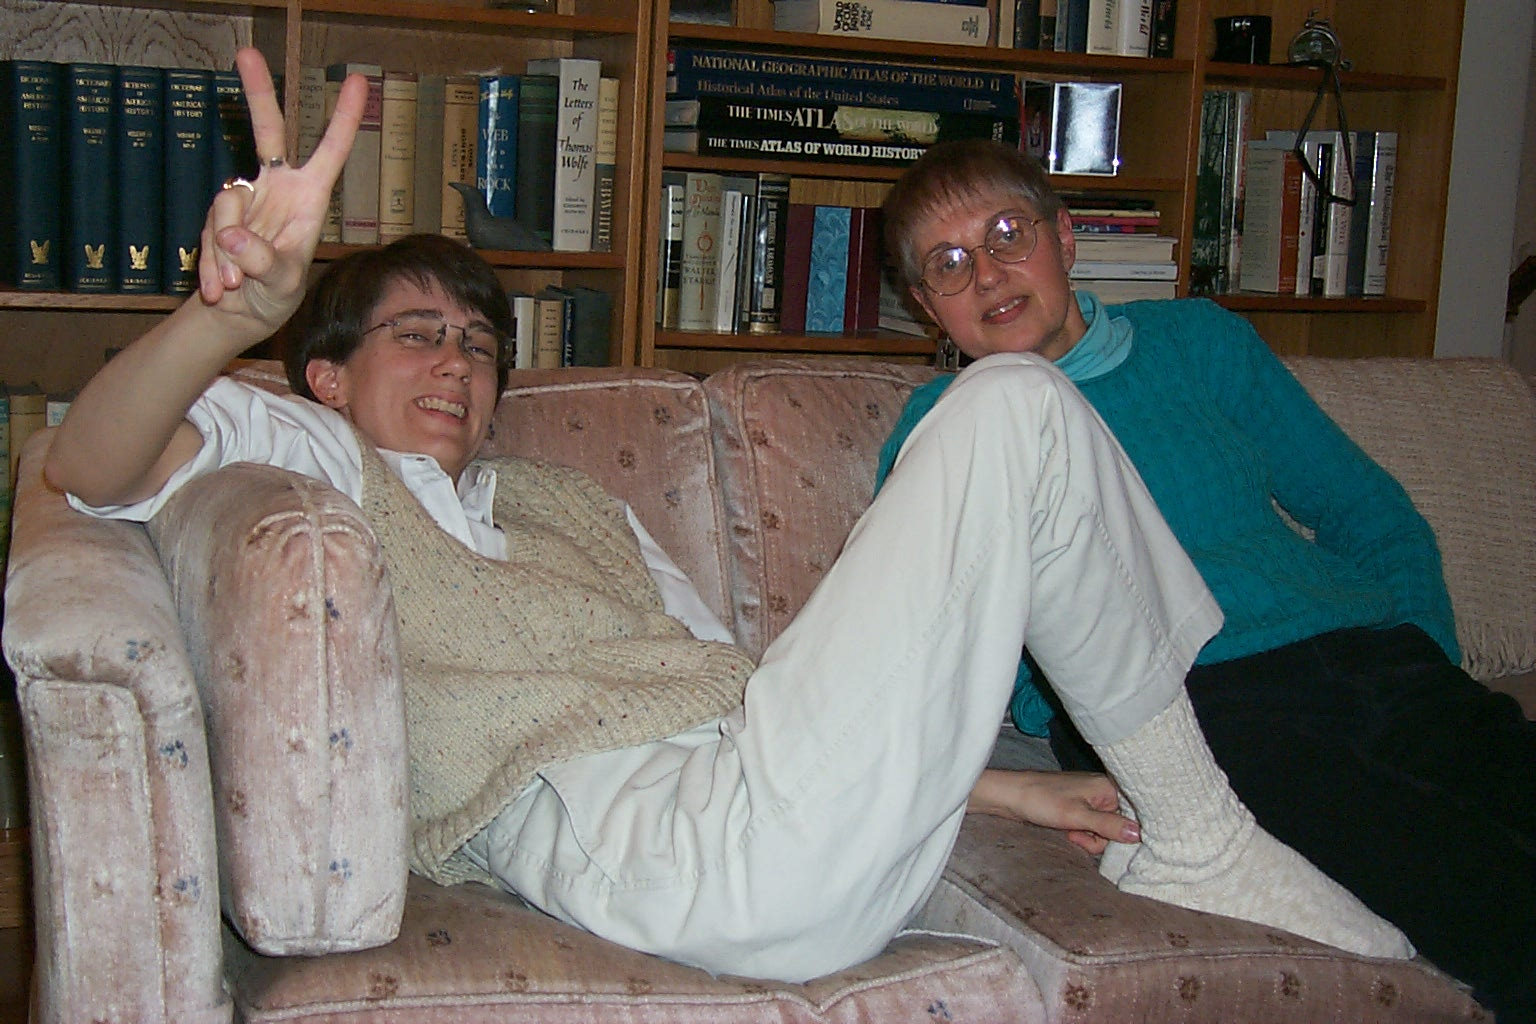 Image: two women, both white, sitting on the sofa. Me with short brown hair and glasses wearing a knit vest and khakis; Mom with short brown/gray hair and glasses wearing a green sweater.